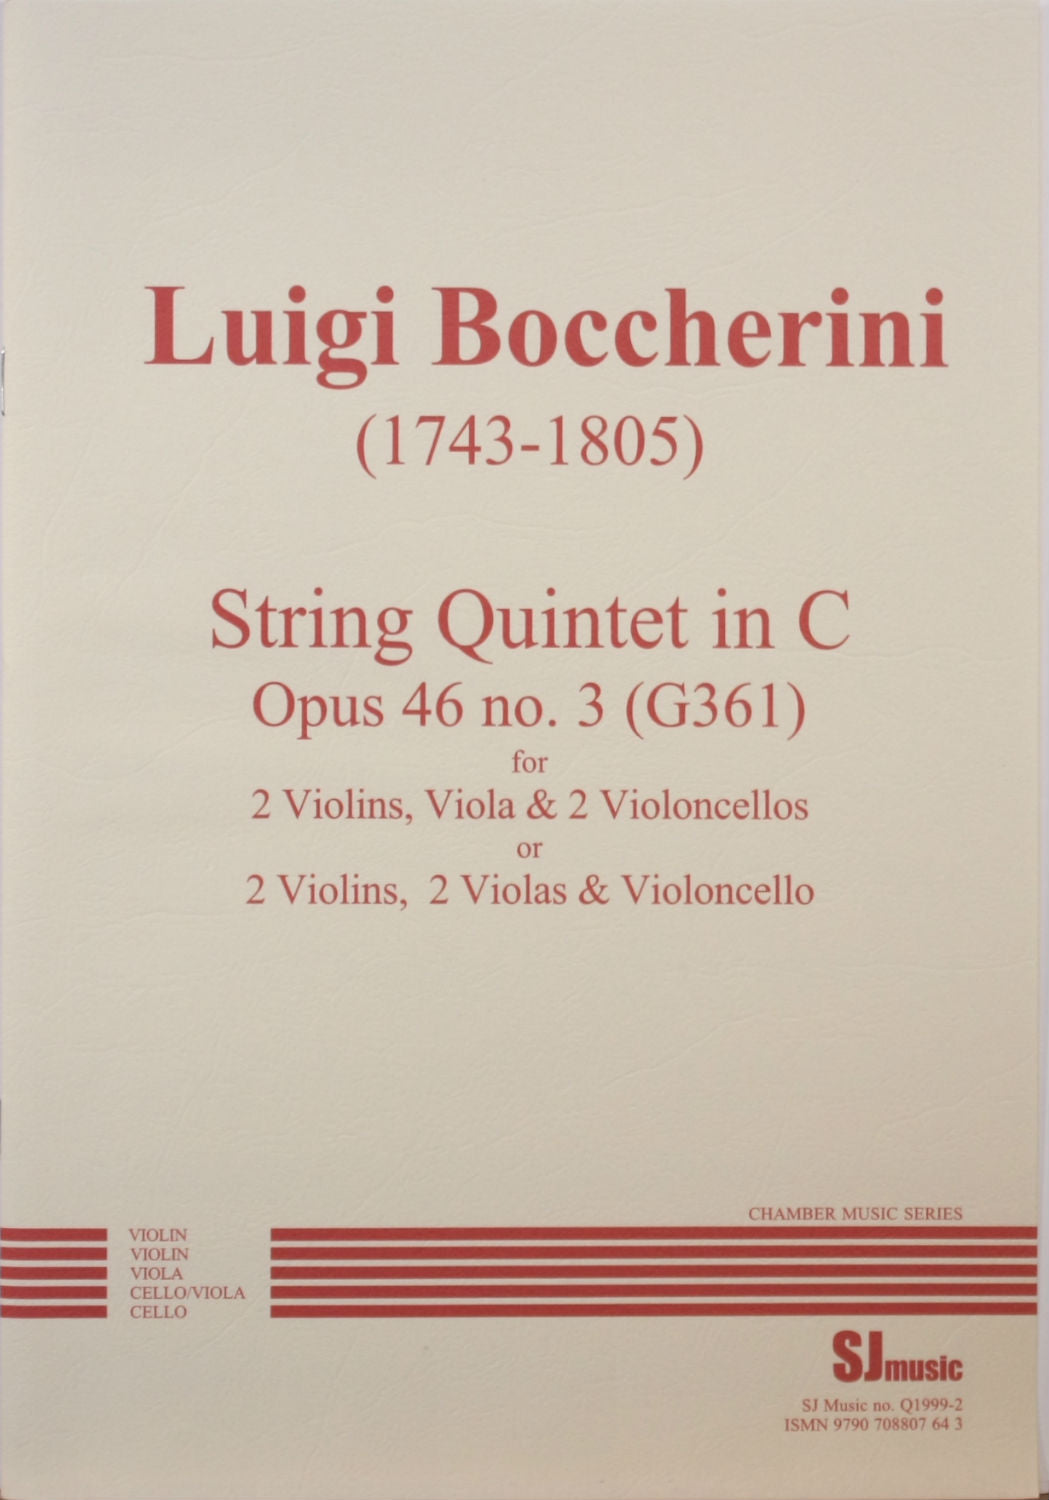 Boccherini: String Quintet in C Major, Op. 46, No. 3, G 361